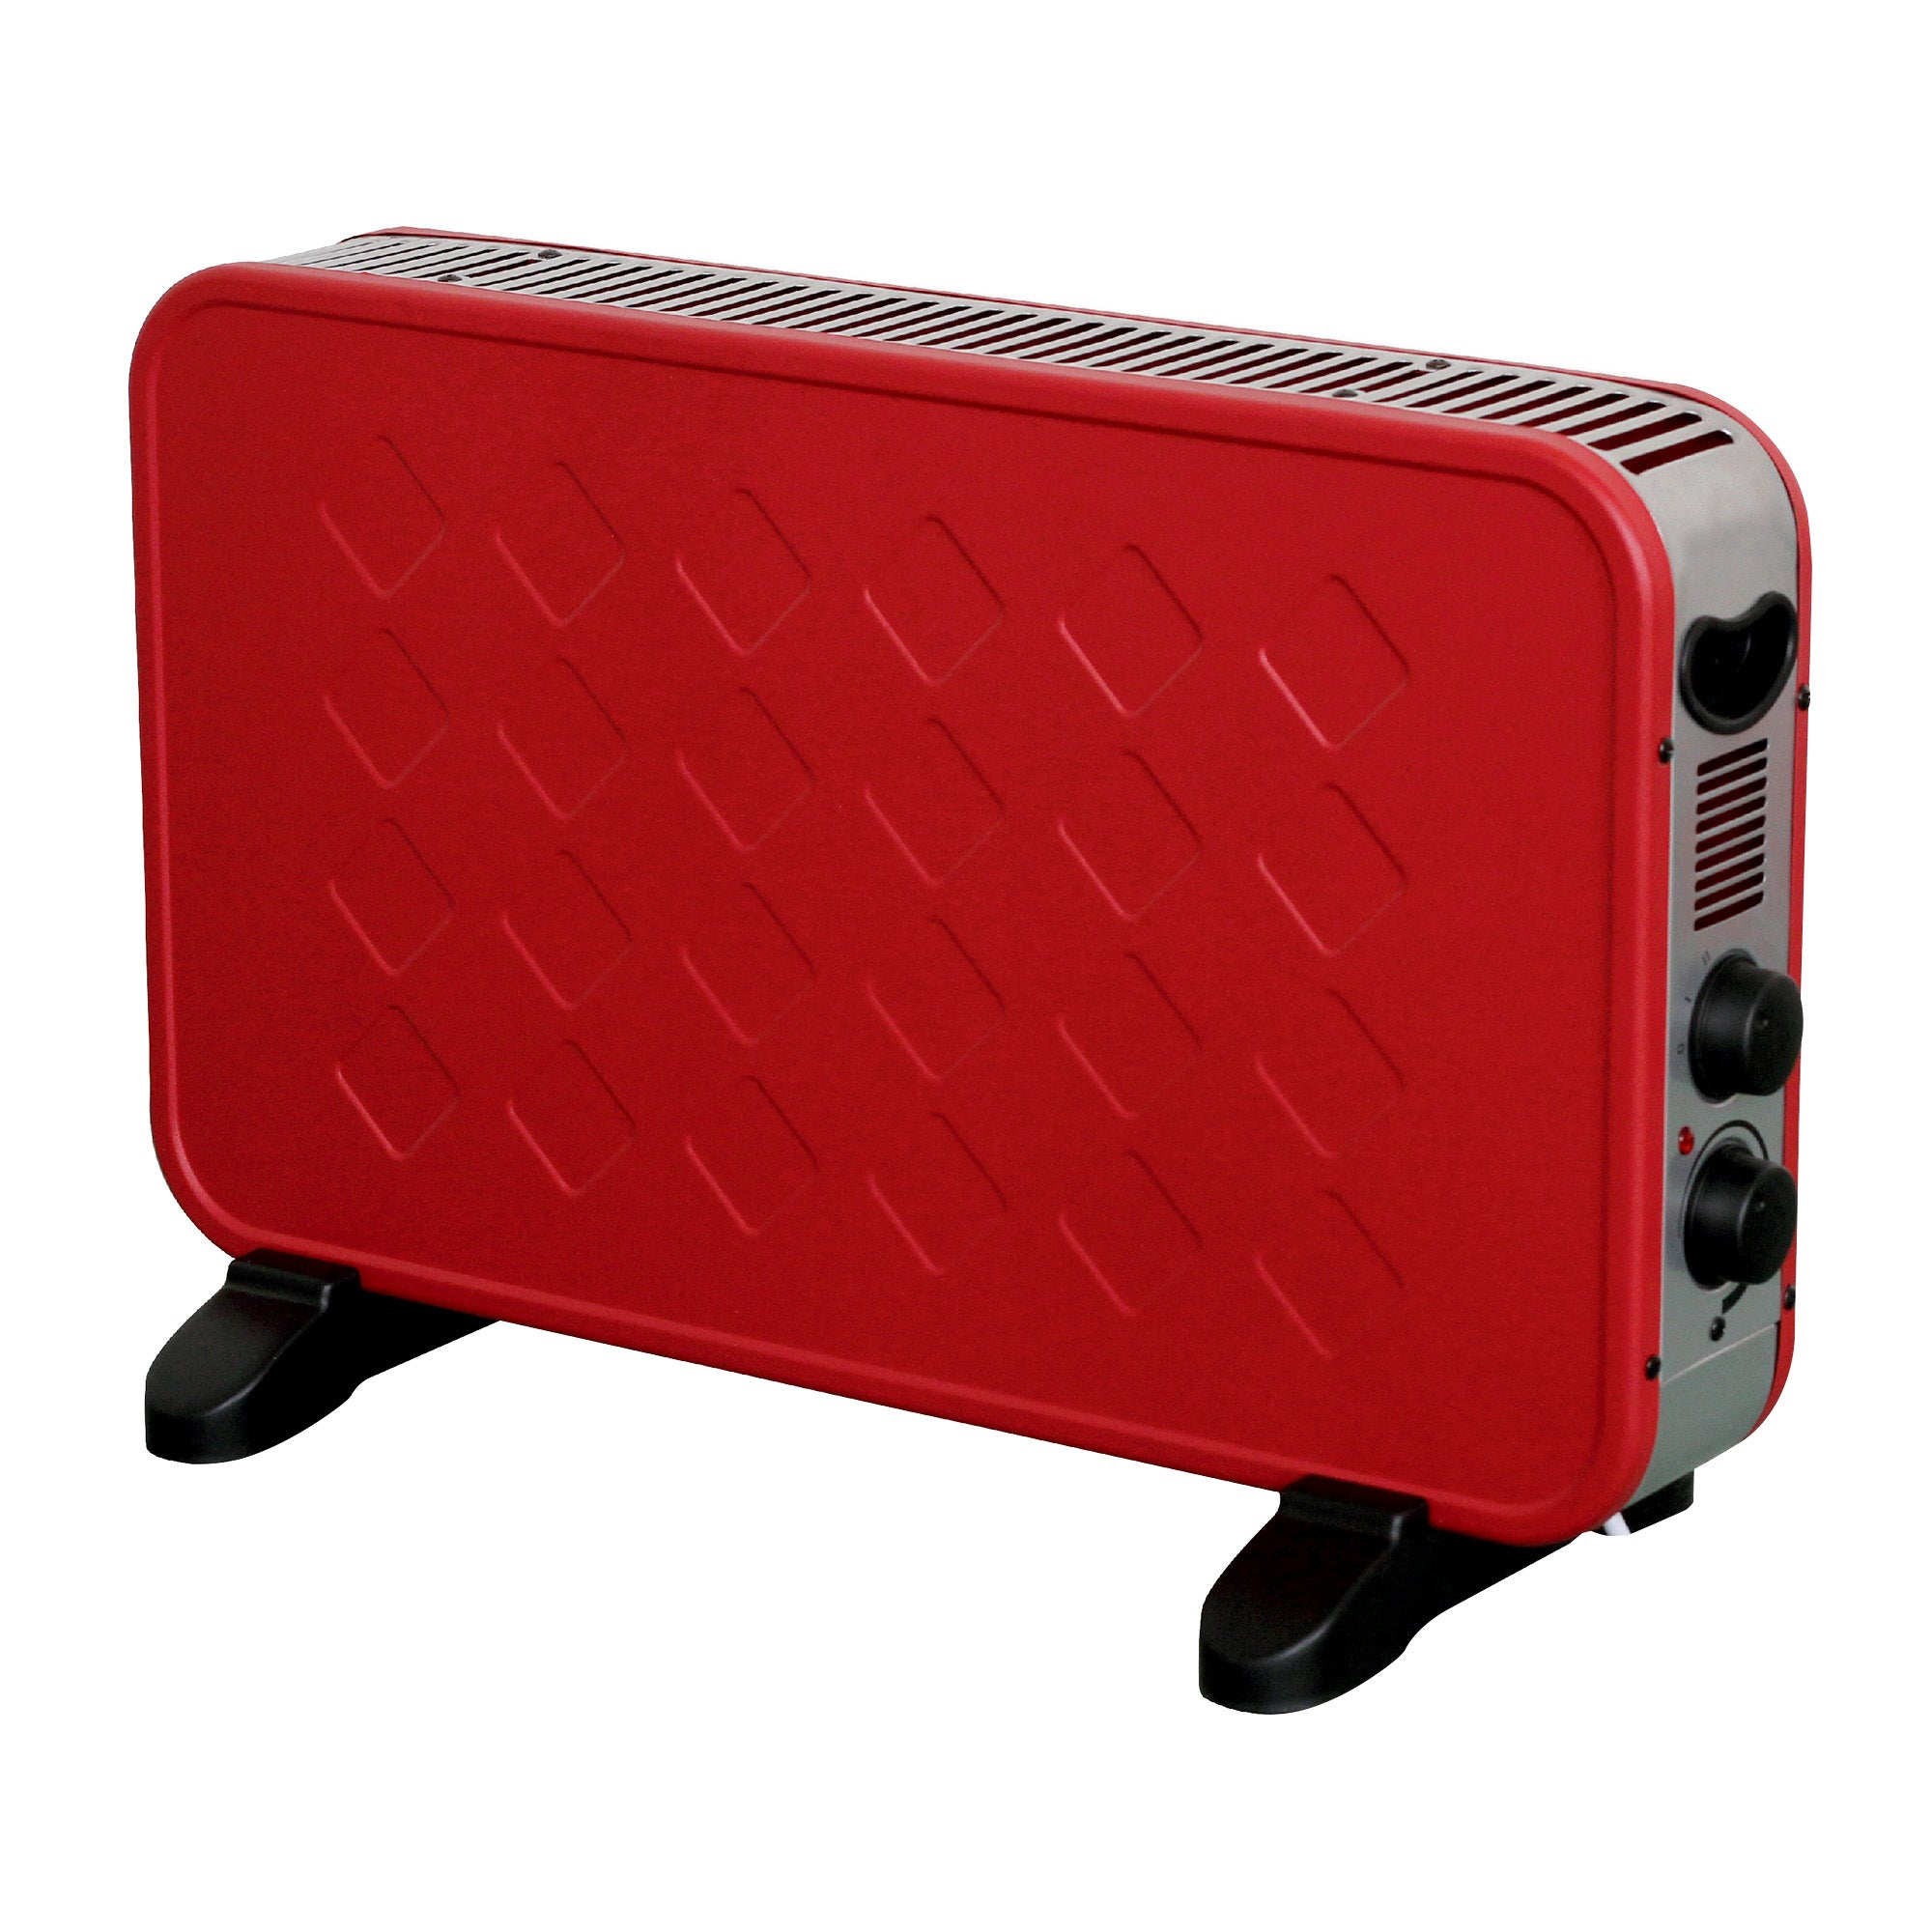 Red Convector Heater